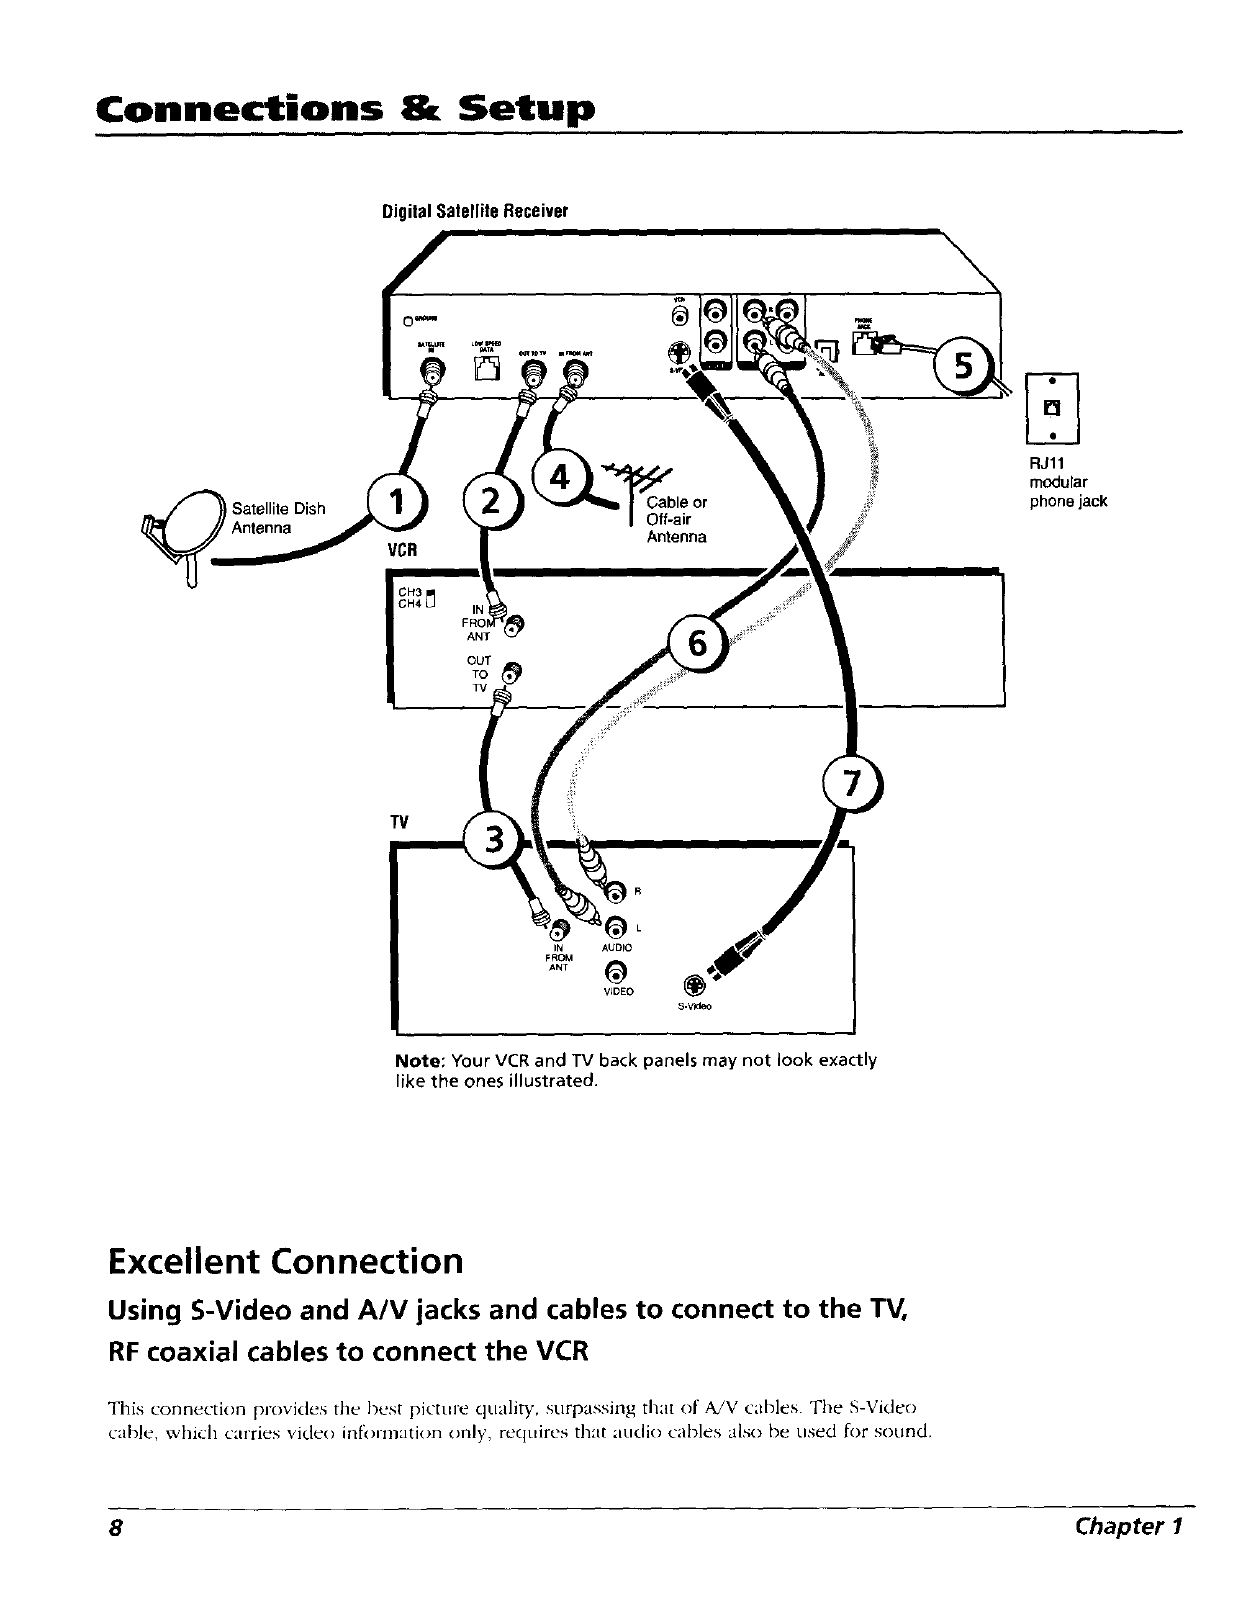 Rca Digital Satellite System Manual L0109140 Coax Cable And Dish Wiring Diagrams Connections Setup Receiver